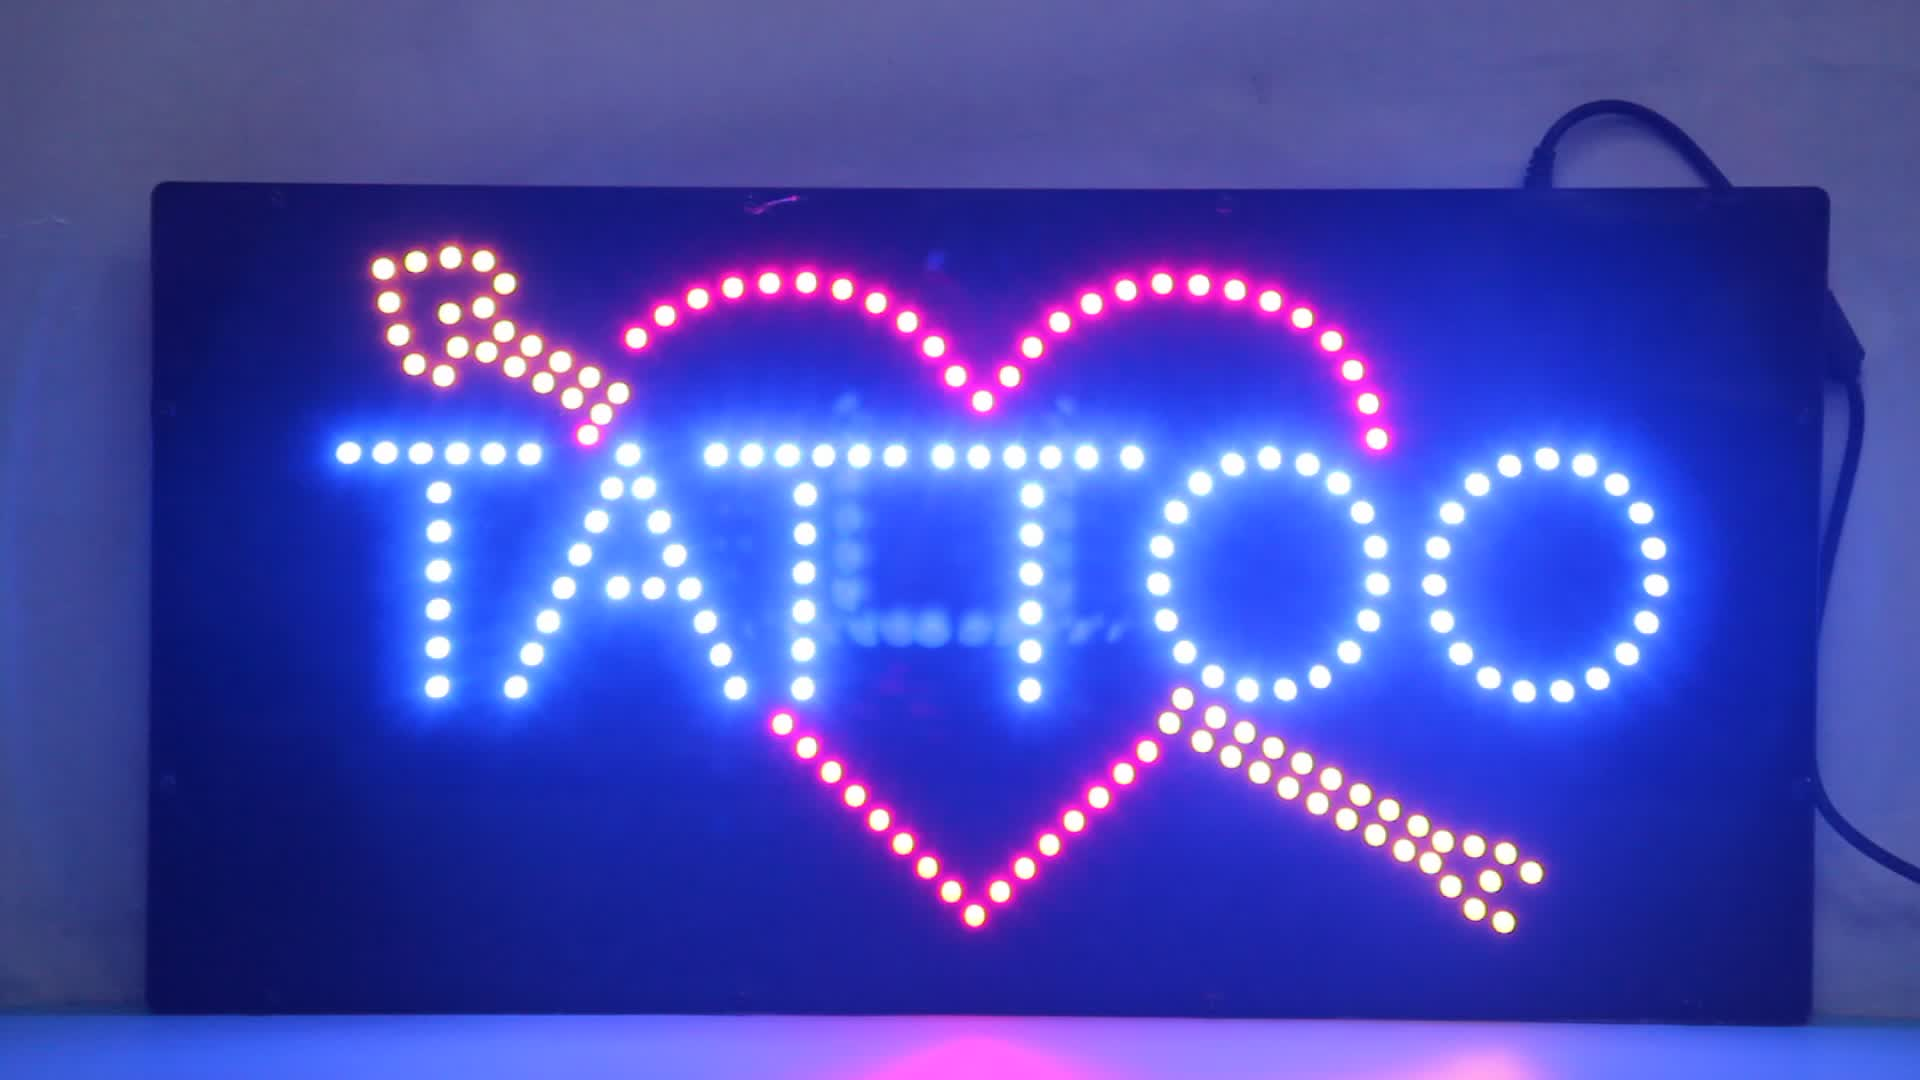 9*19'' LED Open Sign, Super Bright Eye Catching Tattoo Sign, Cheap Advertising Acrylic LED Sign for Tattoo Shop